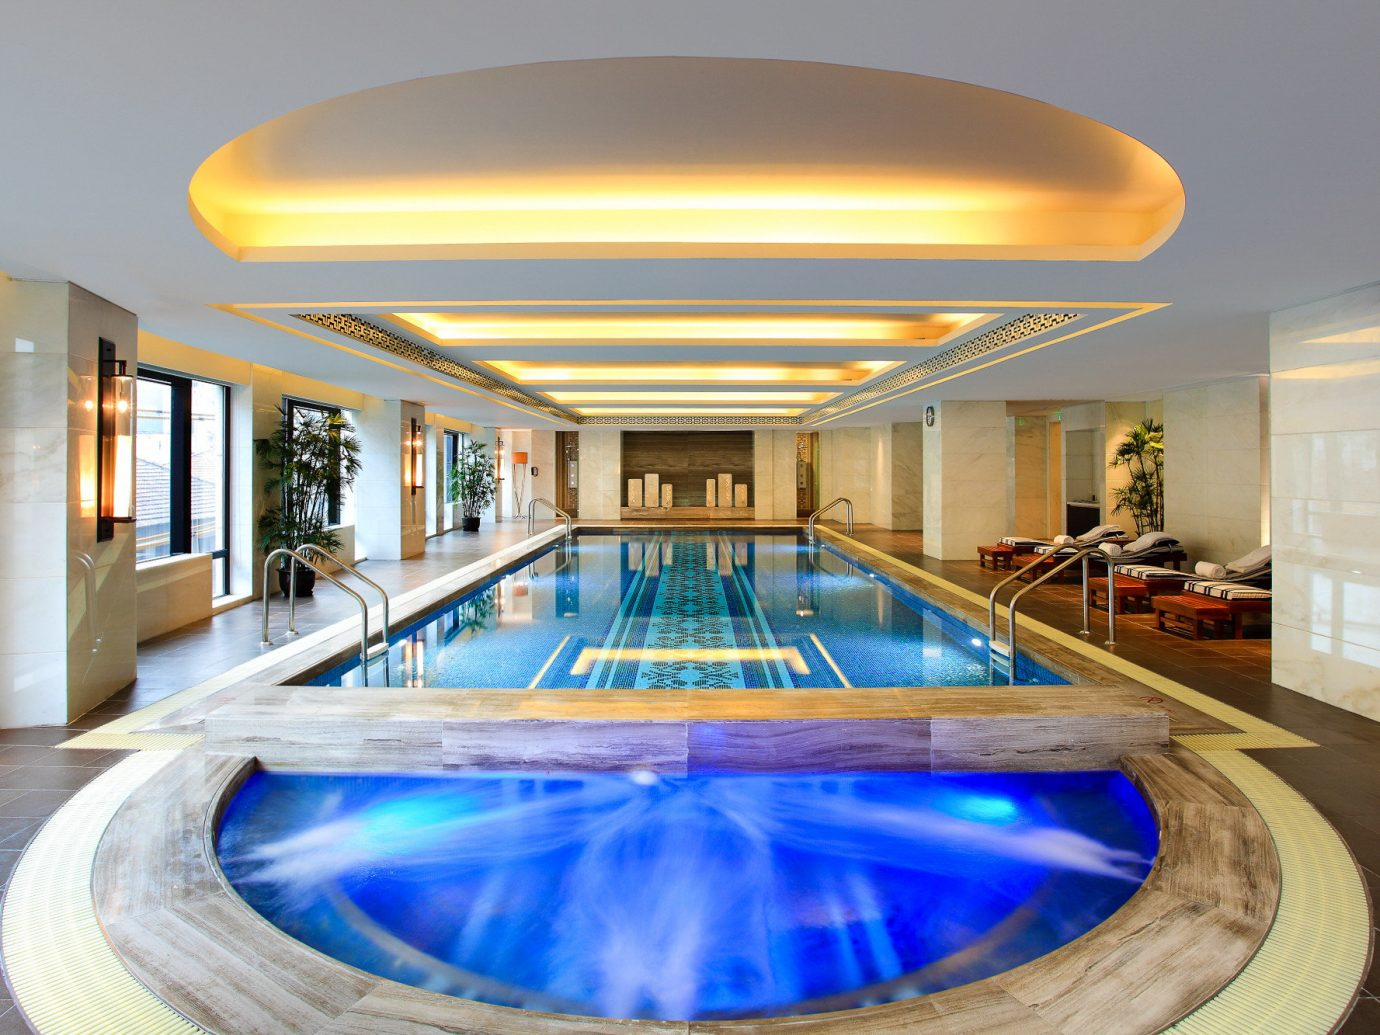 Boutique Hotels Luxury Travel indoor ceiling swimming pool building property leisure Architecture estate real estate leisure centre interior design apartment hotel condominium Lobby thermae penthouse apartment Resort daylighting amenity water